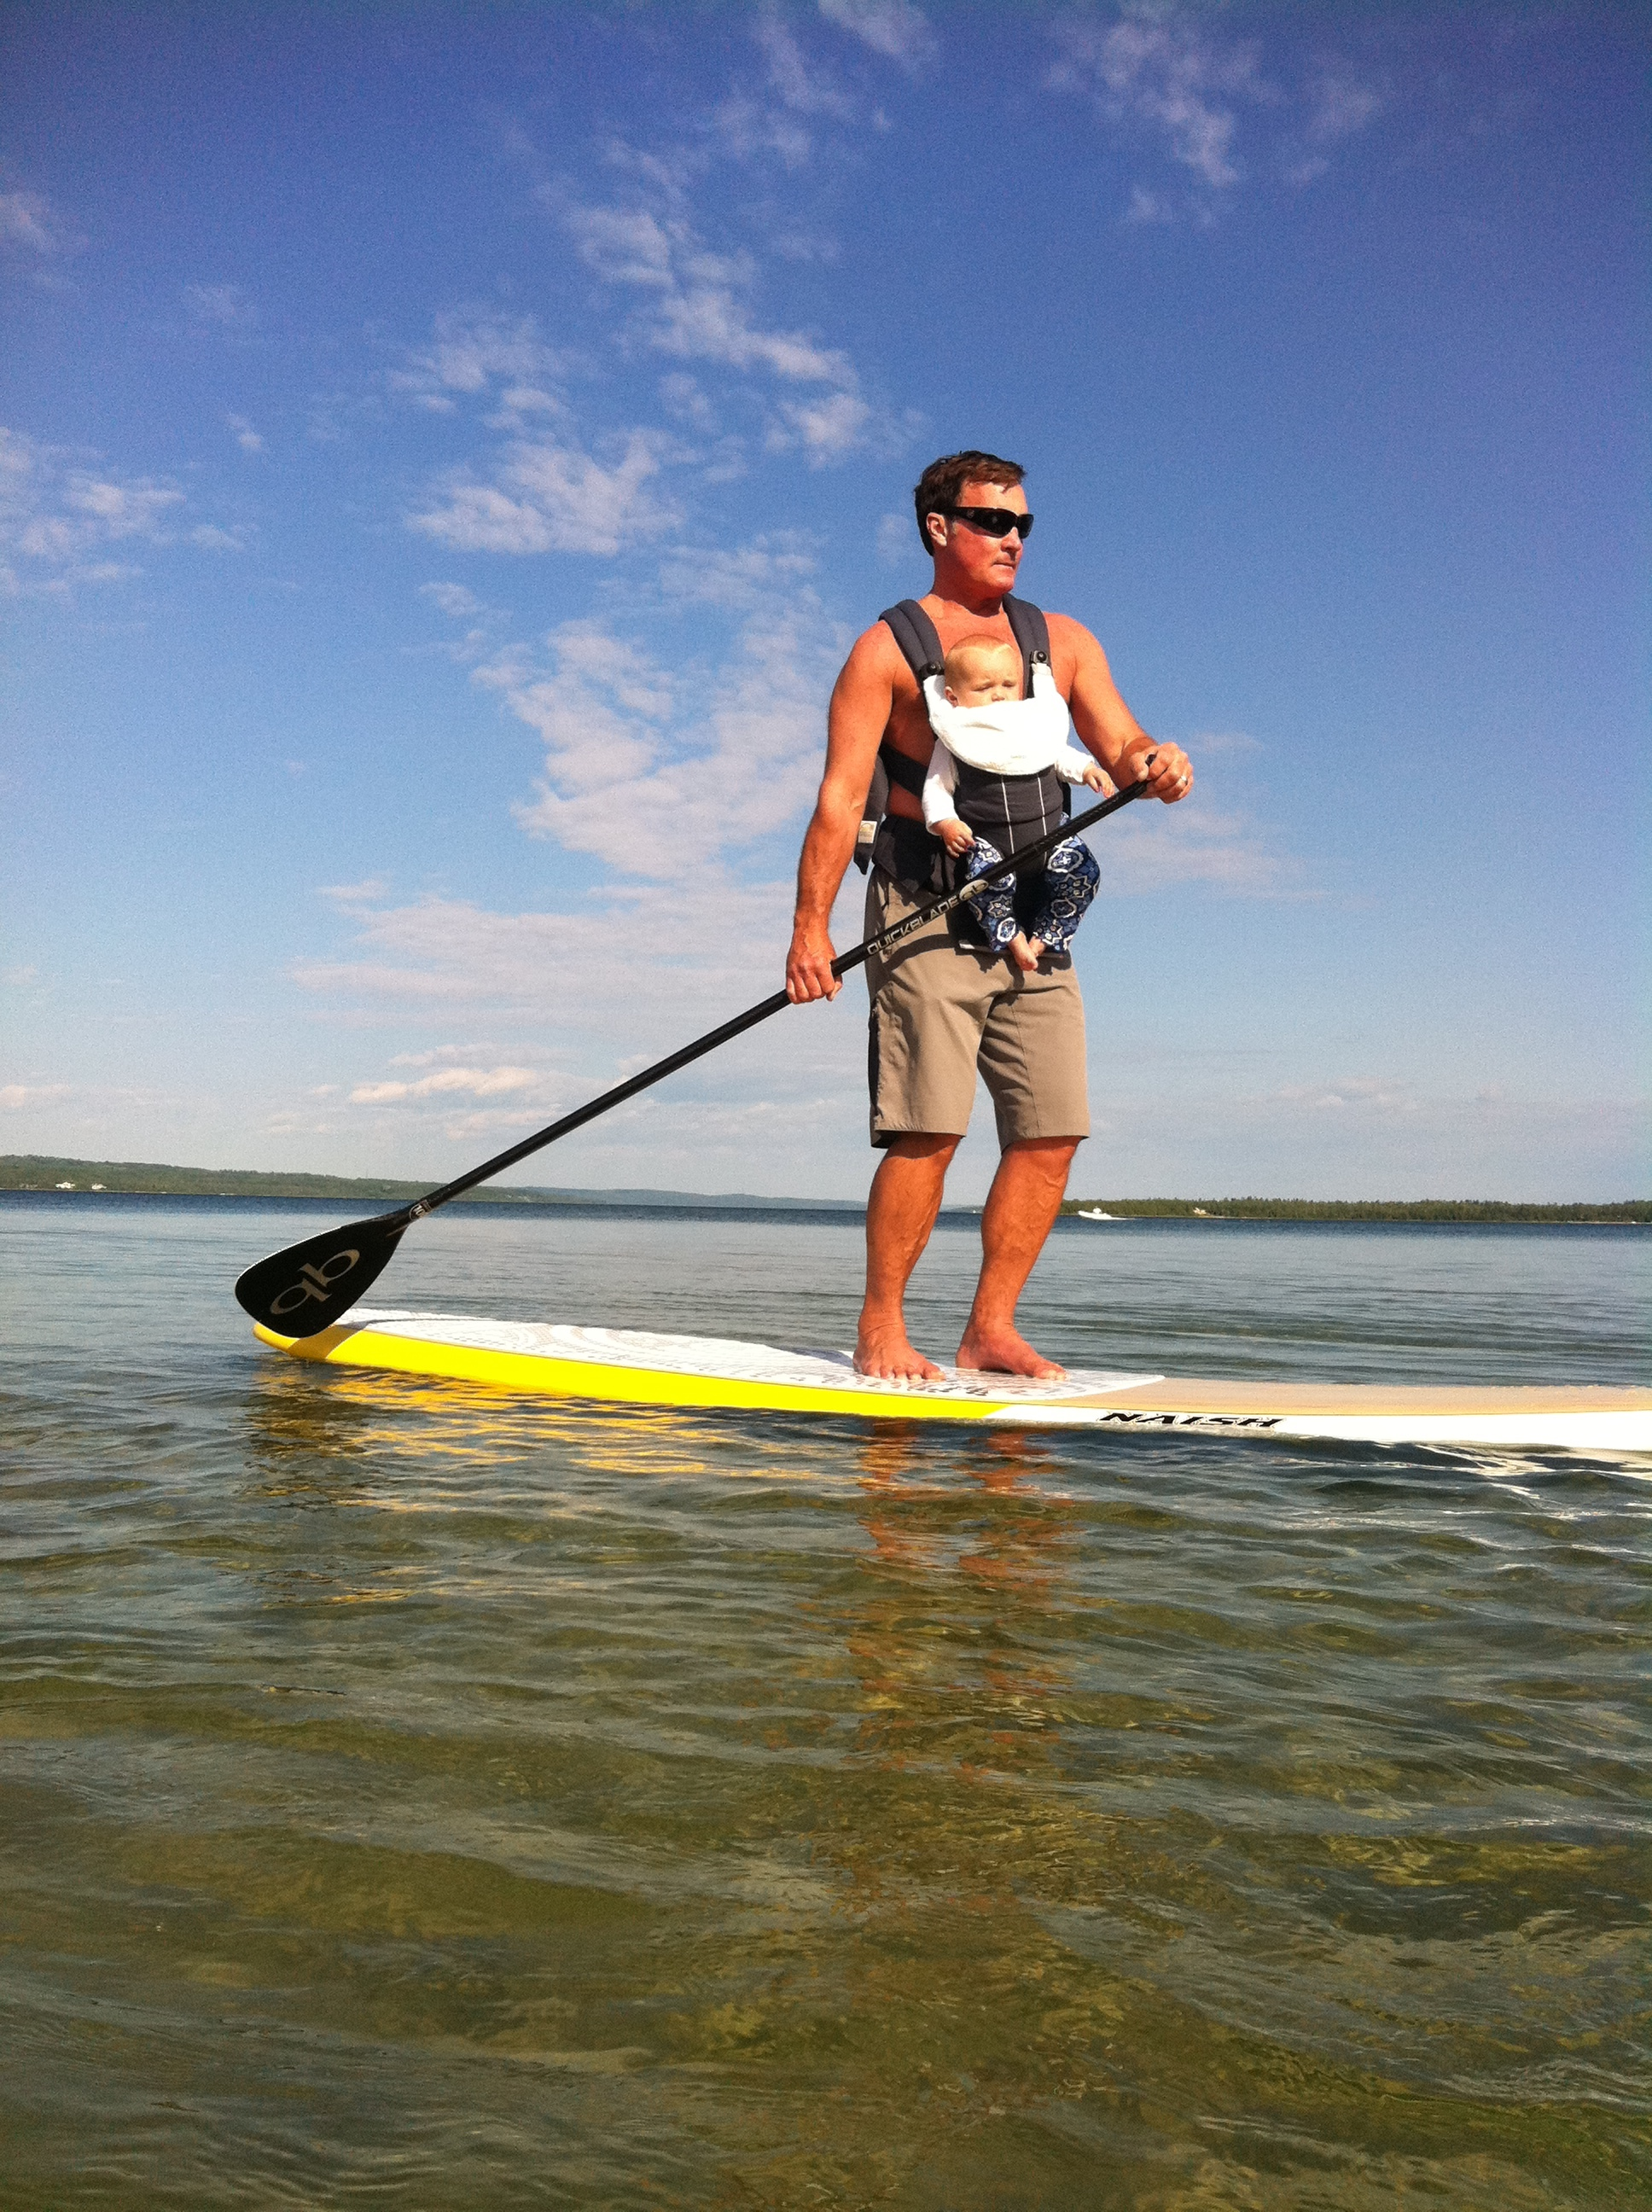 98a0f4f320 SUP Baby | LAKE EFFECT OUTFITTERS Stand Up Paddleboard Rentals ...